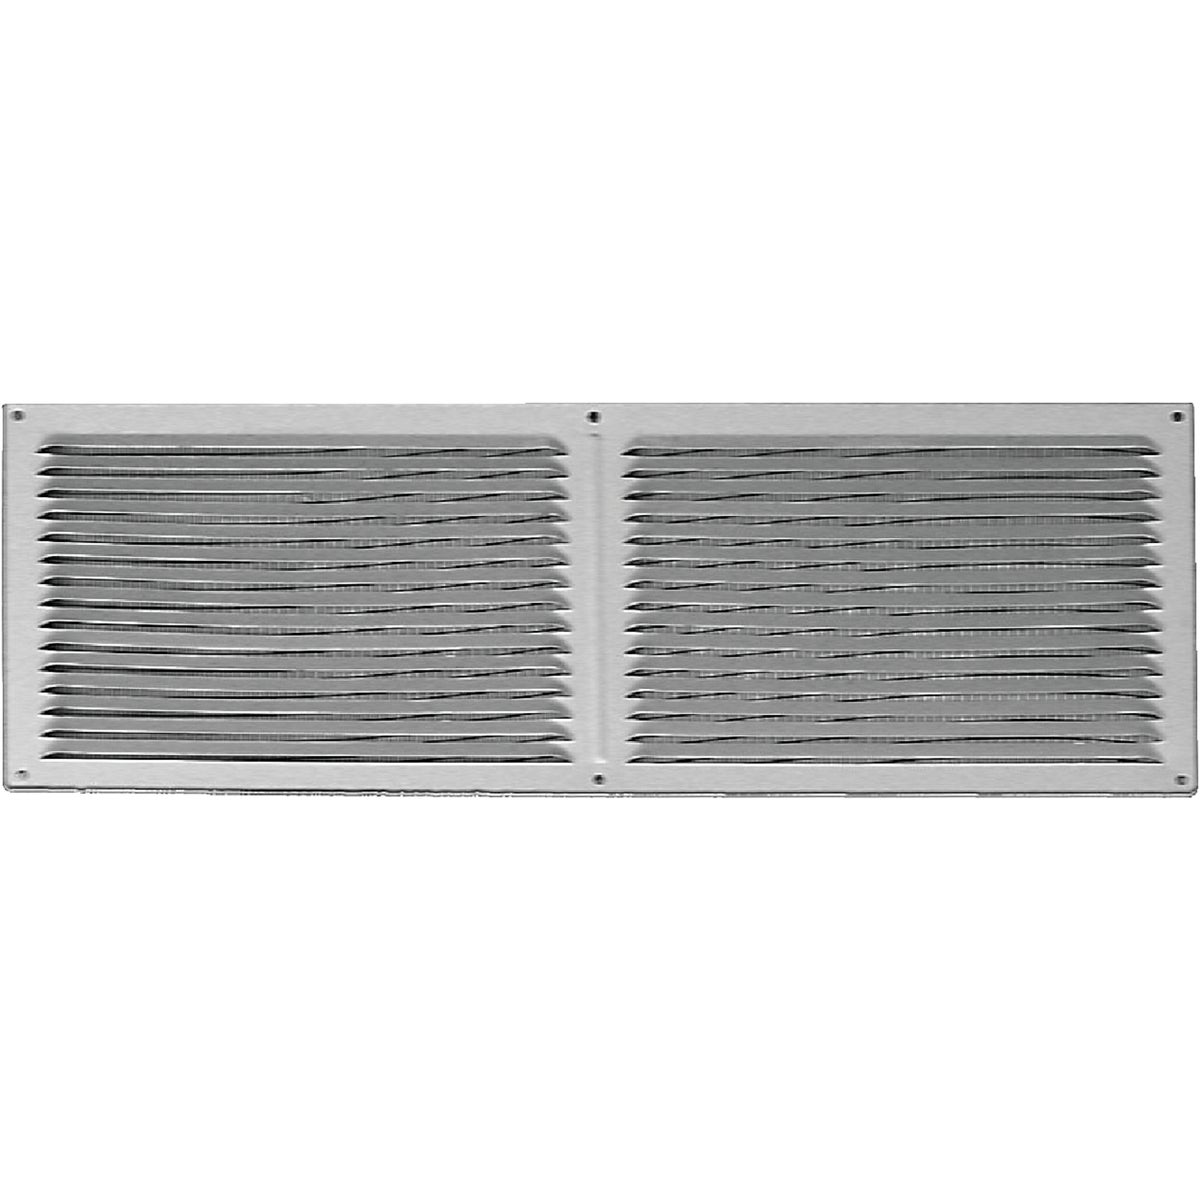 NorWesco Soffit Ventilator, 84219